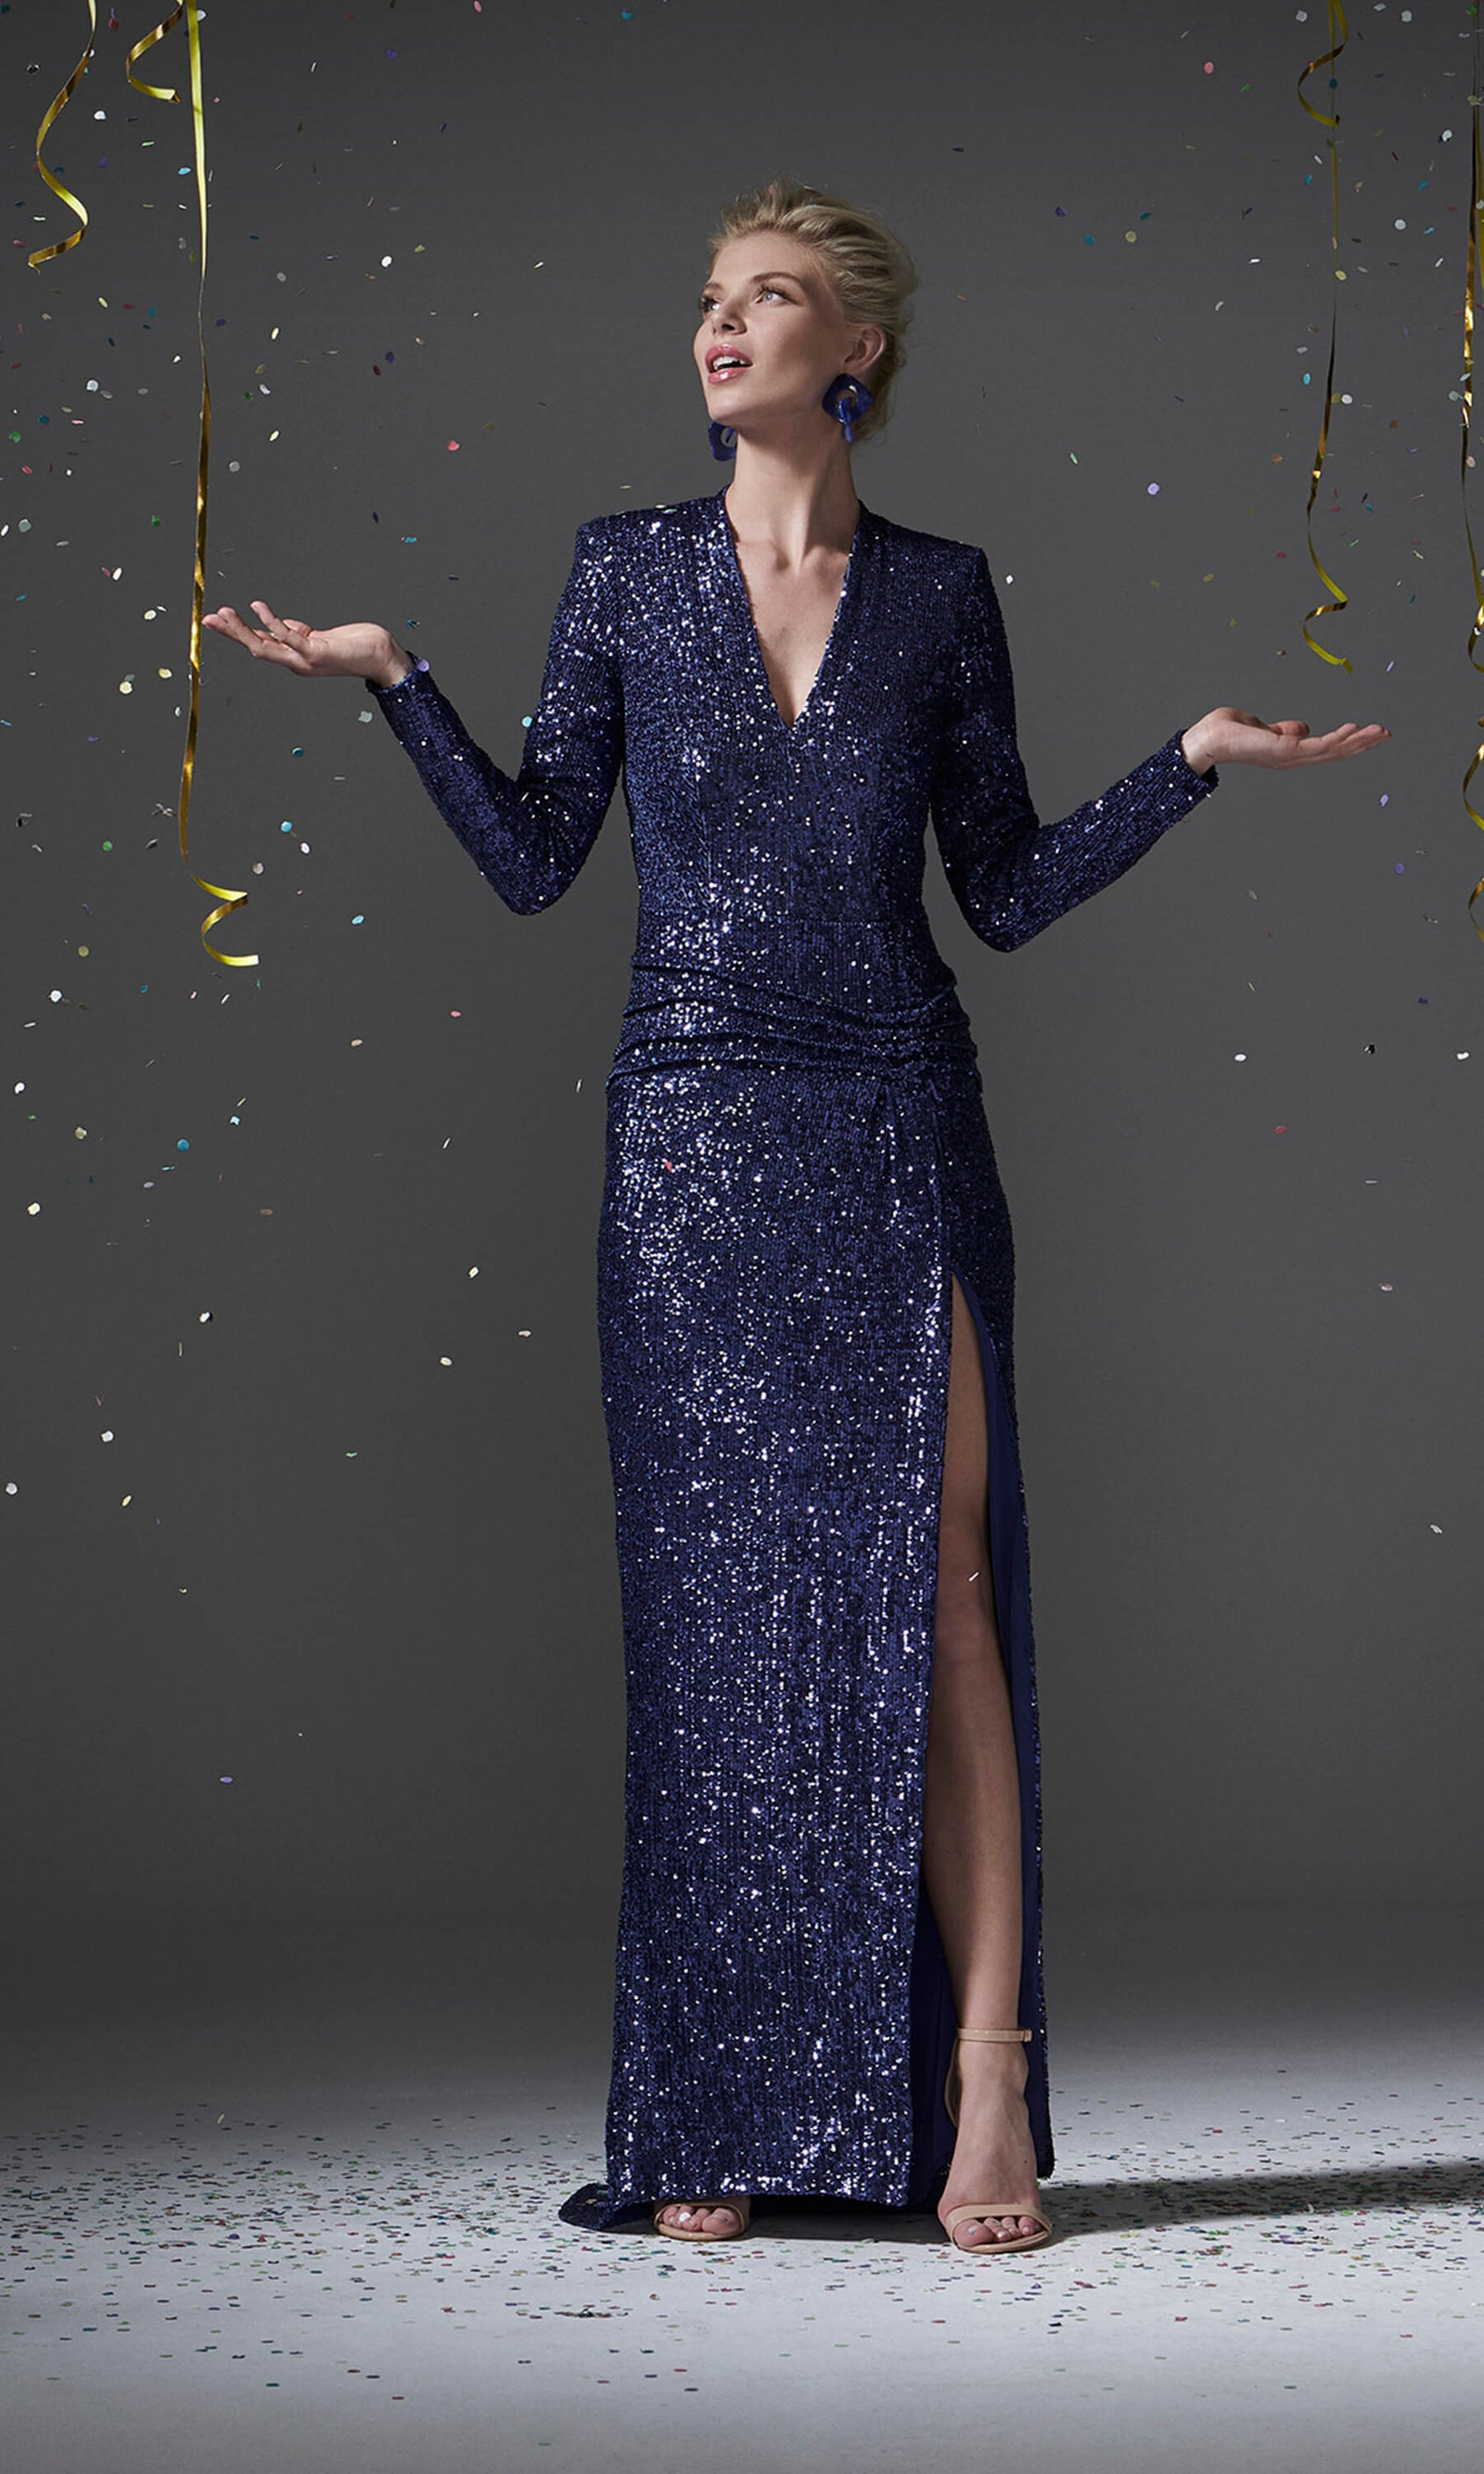 96100 Blue Carla Ruiz Sequin Evening Dress With Sleeves